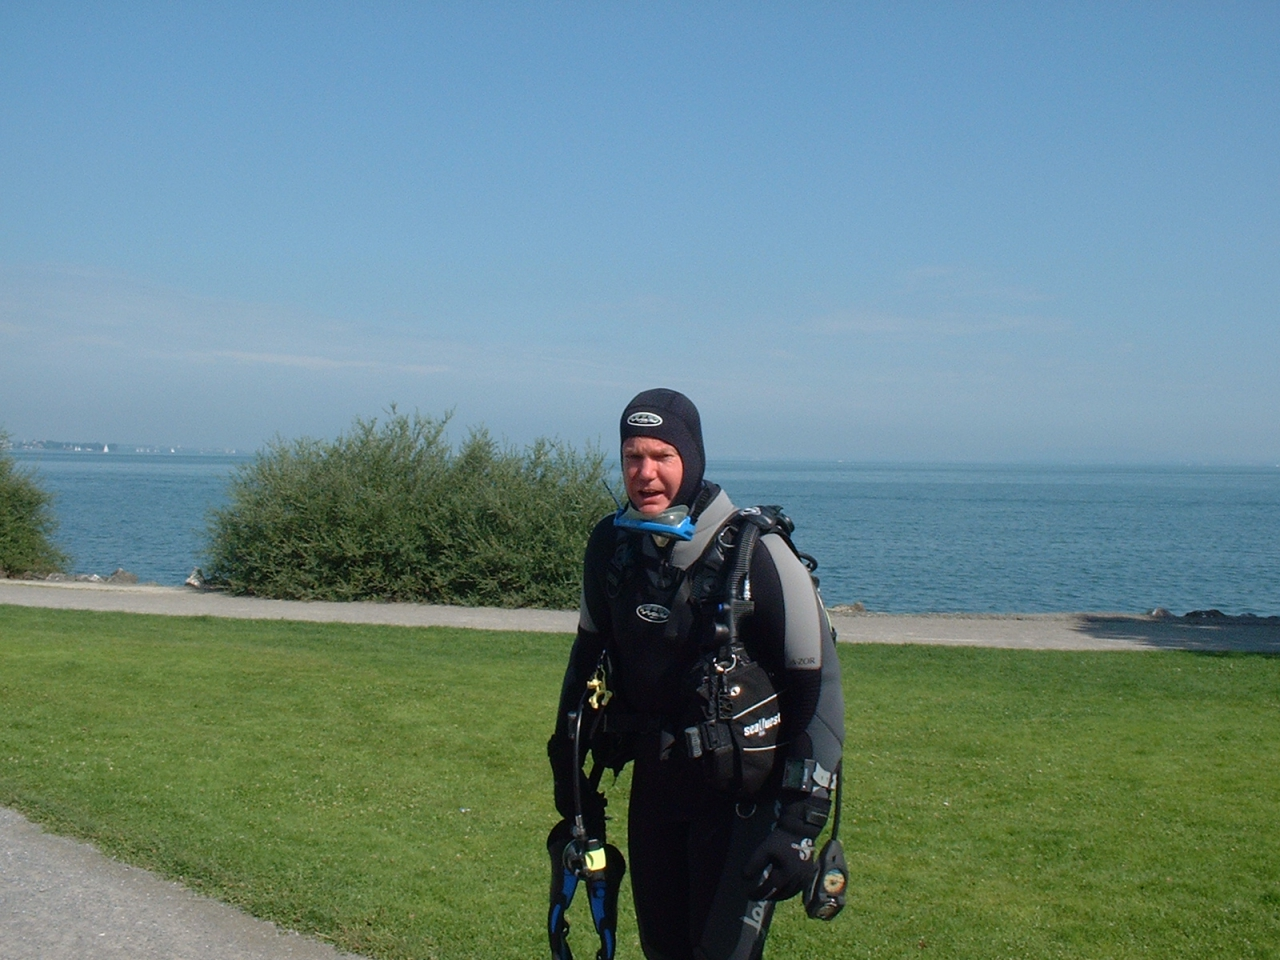 Bodensee_04_13